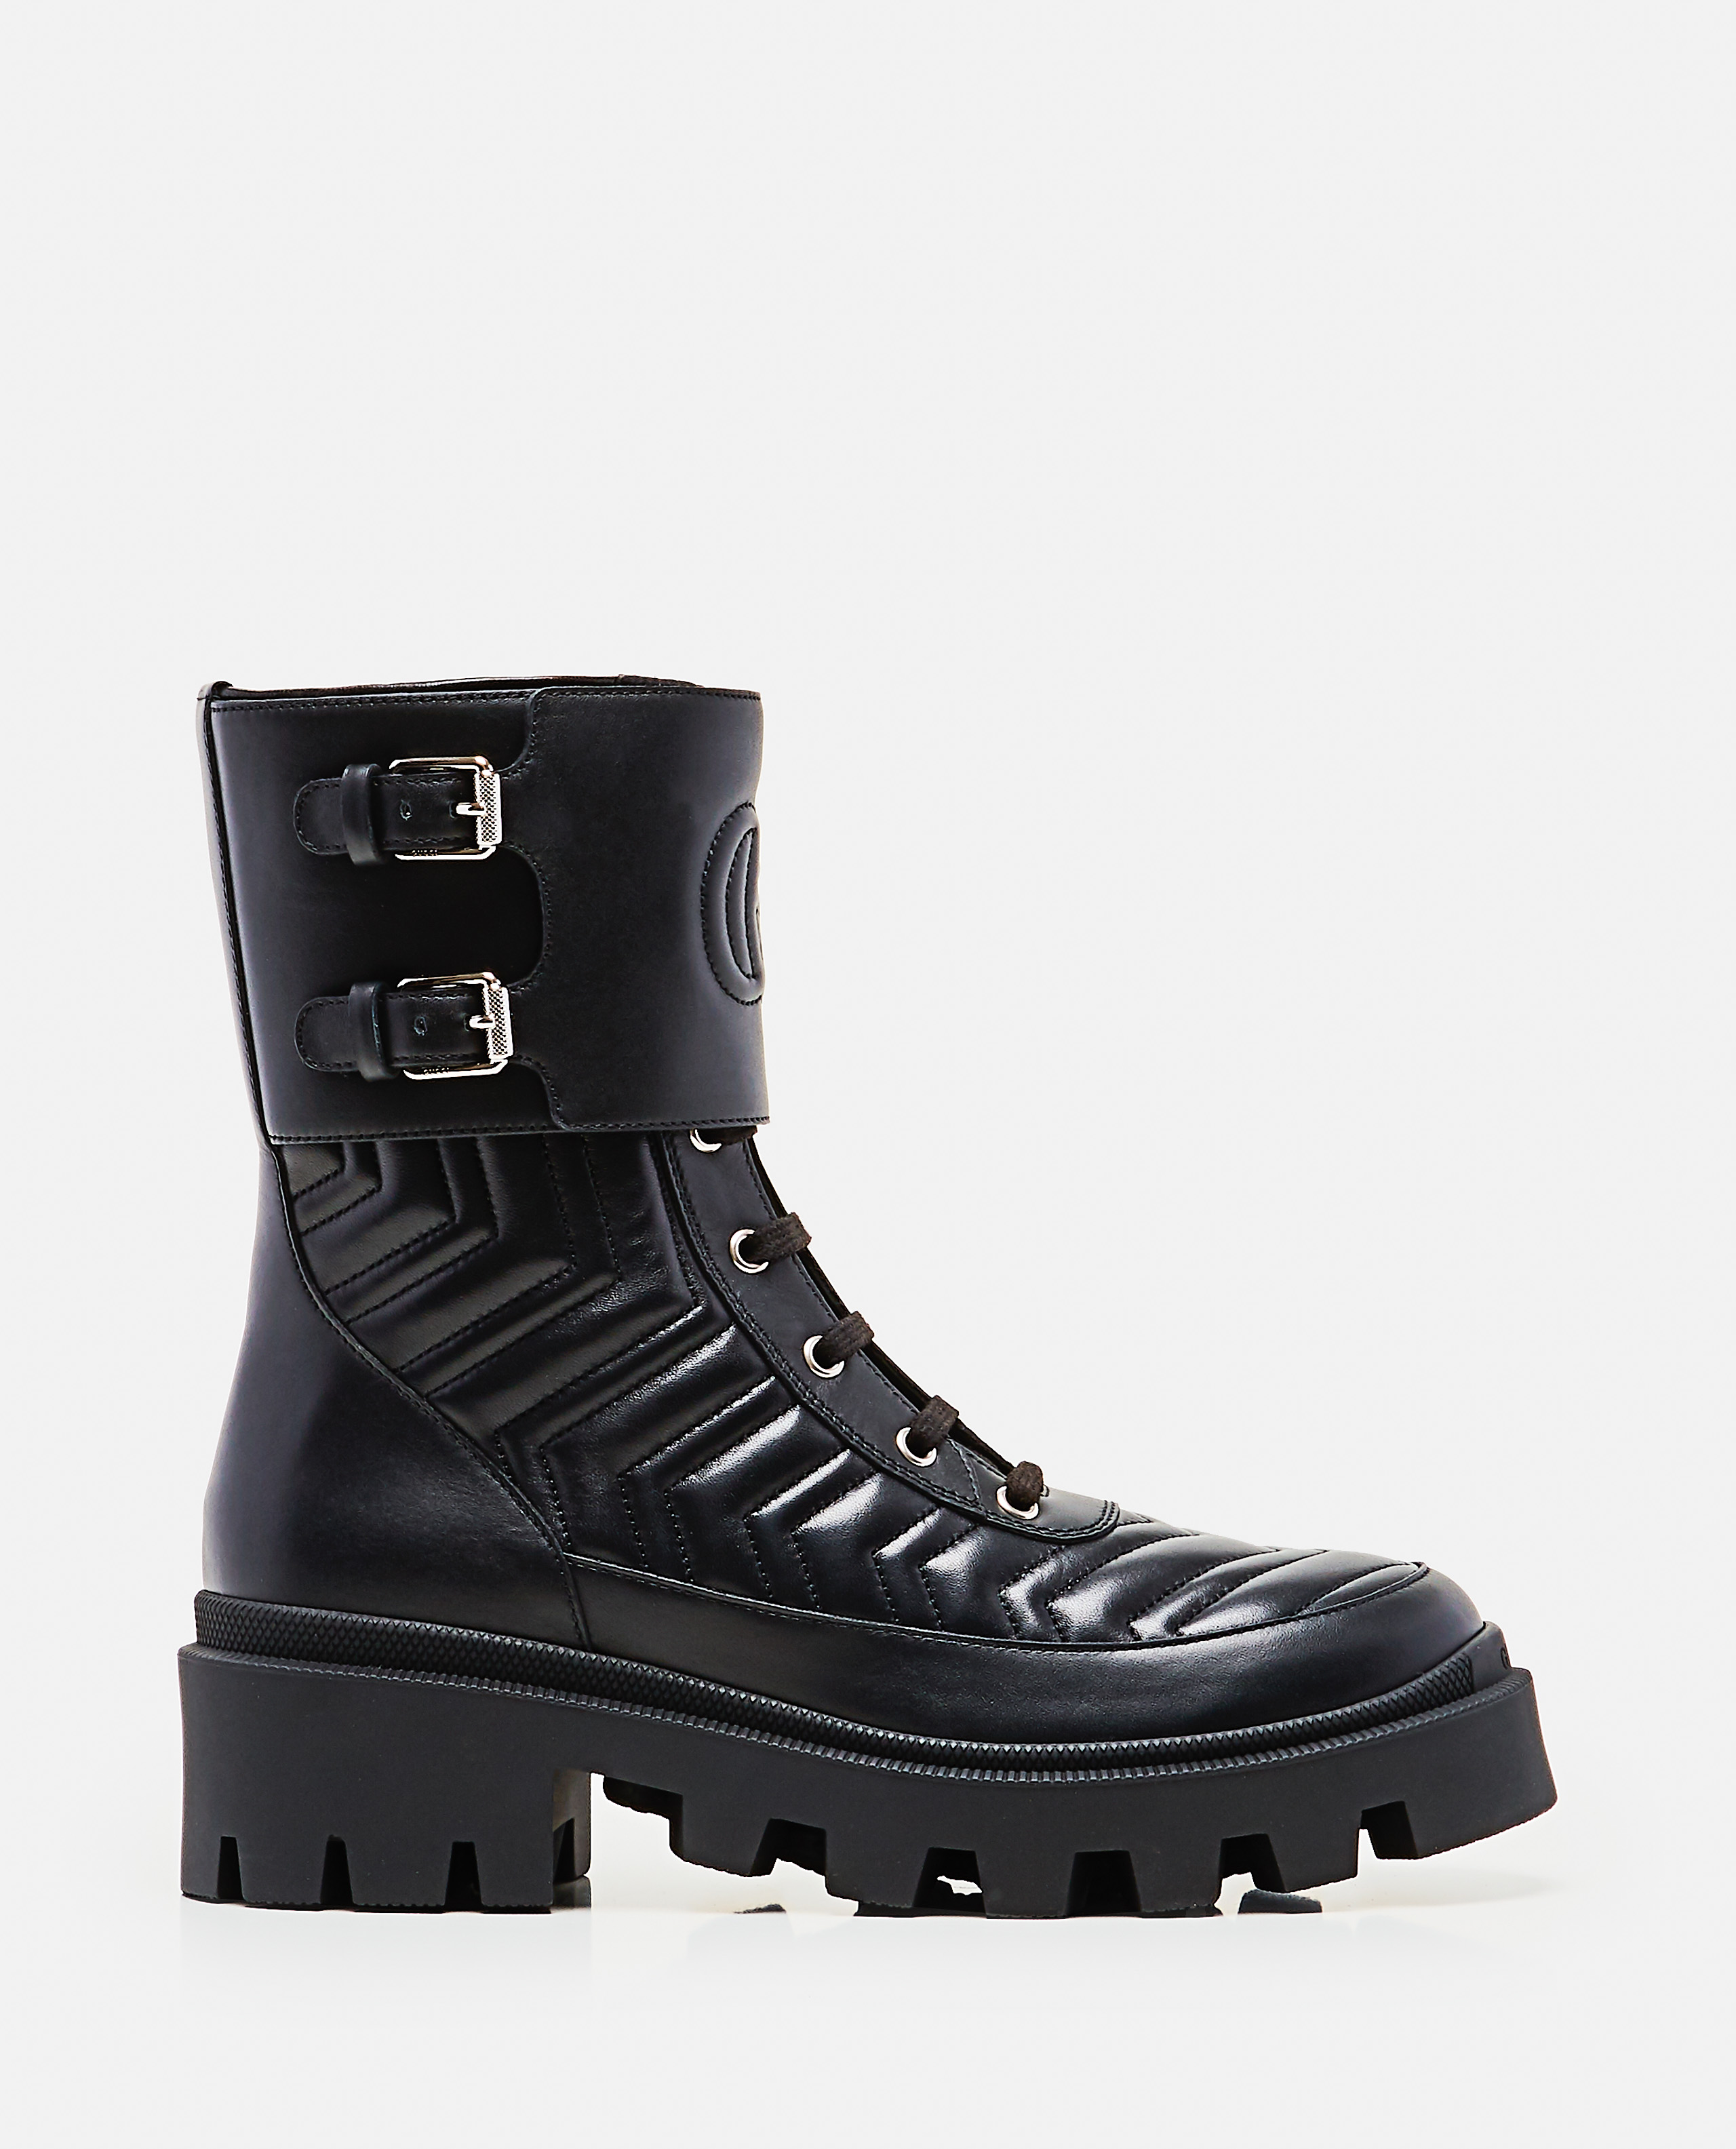 Womens boot with GG detail